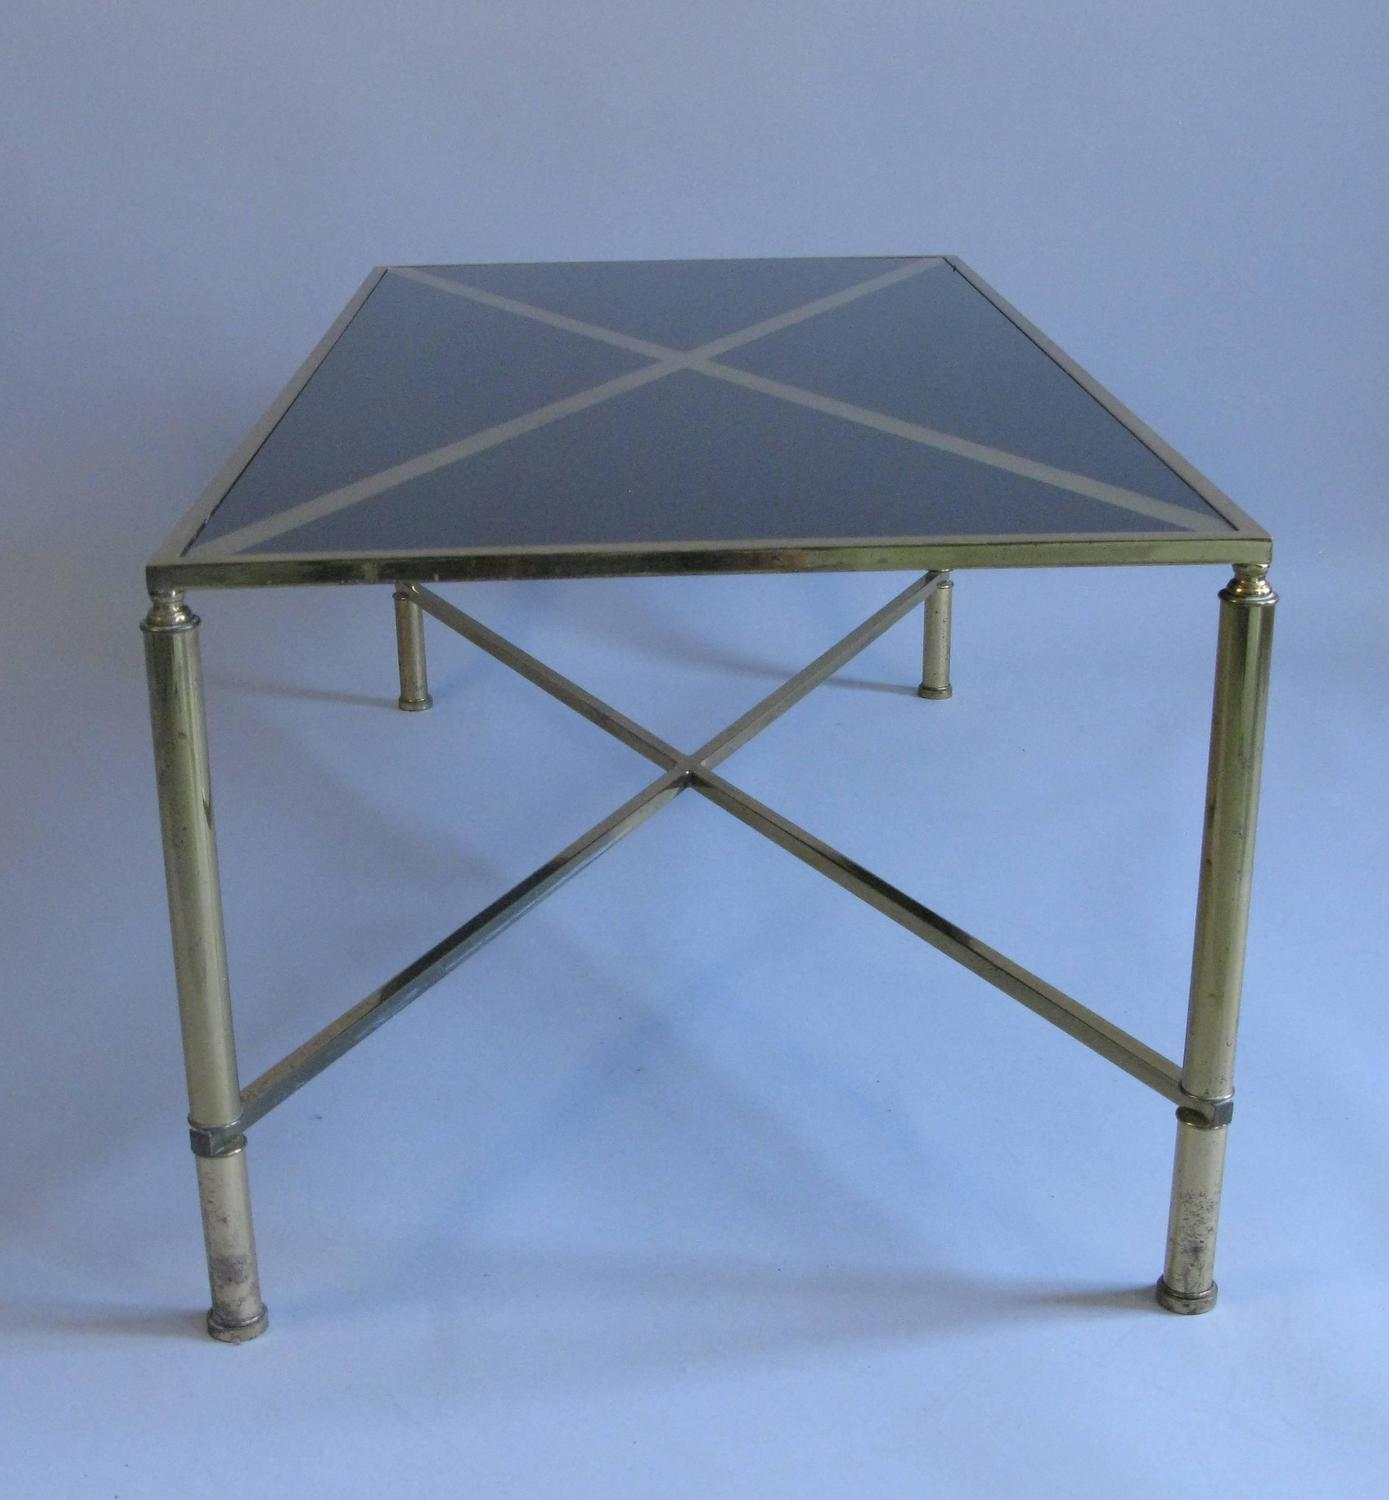 Black Glass Coffee Table Sale: 1960s Black Glass And Brass Coffee Table For Sale At 1stdibs